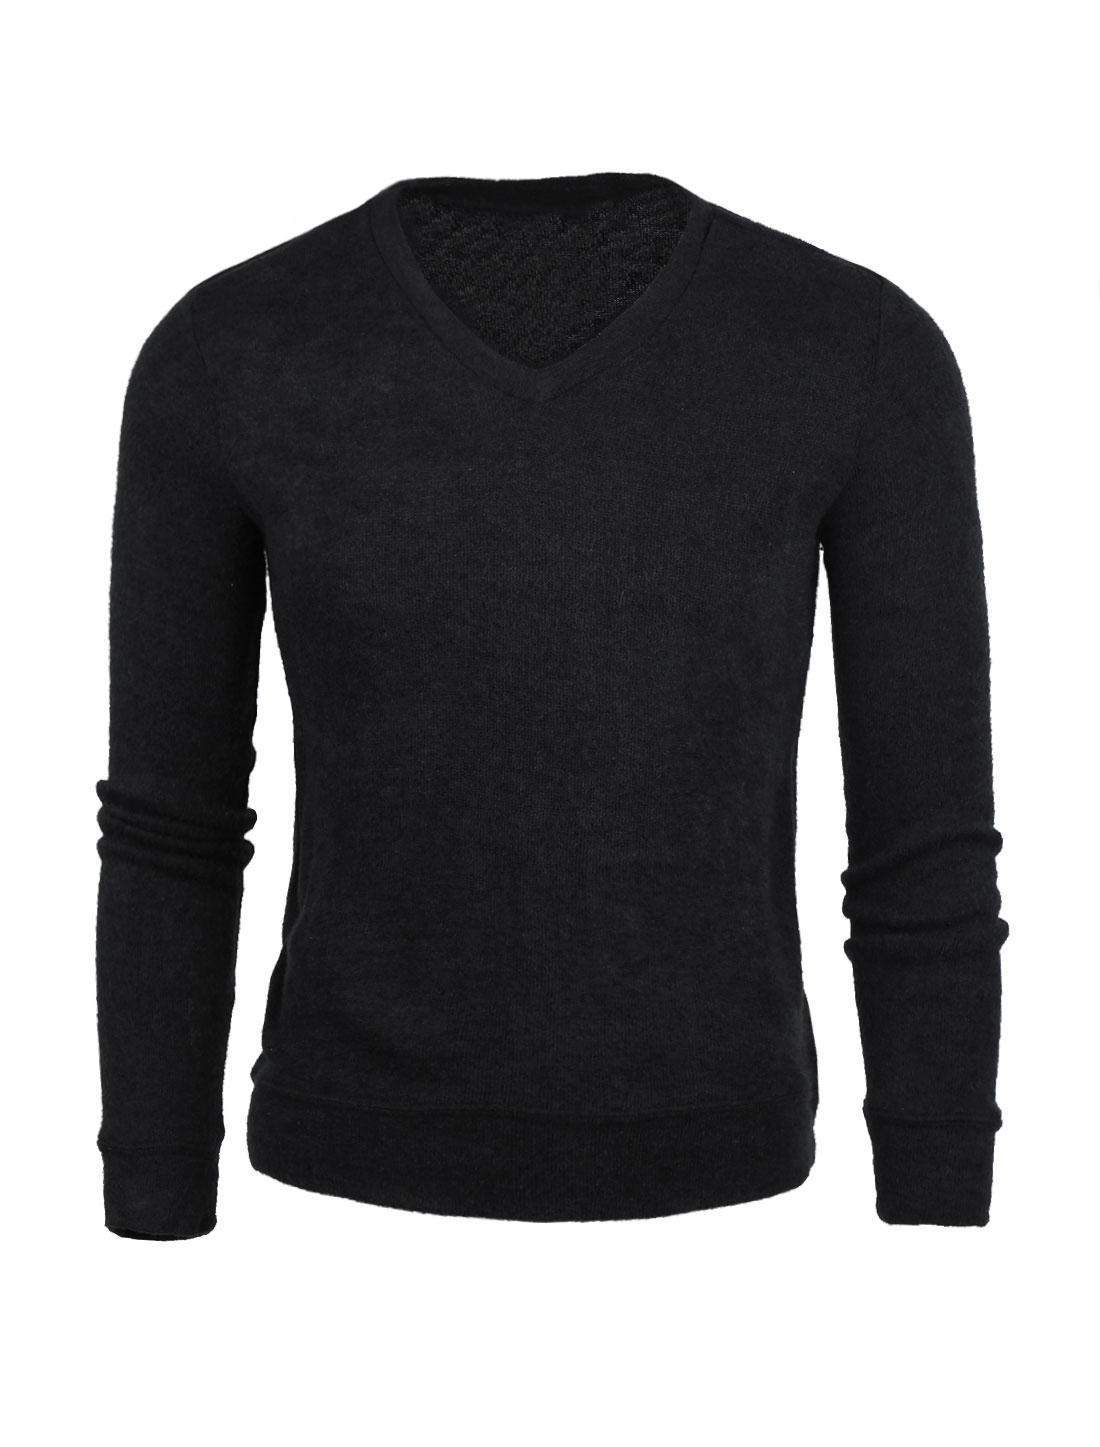 Men V Neck Long Sleeves Slim Fit Knit Top Black L